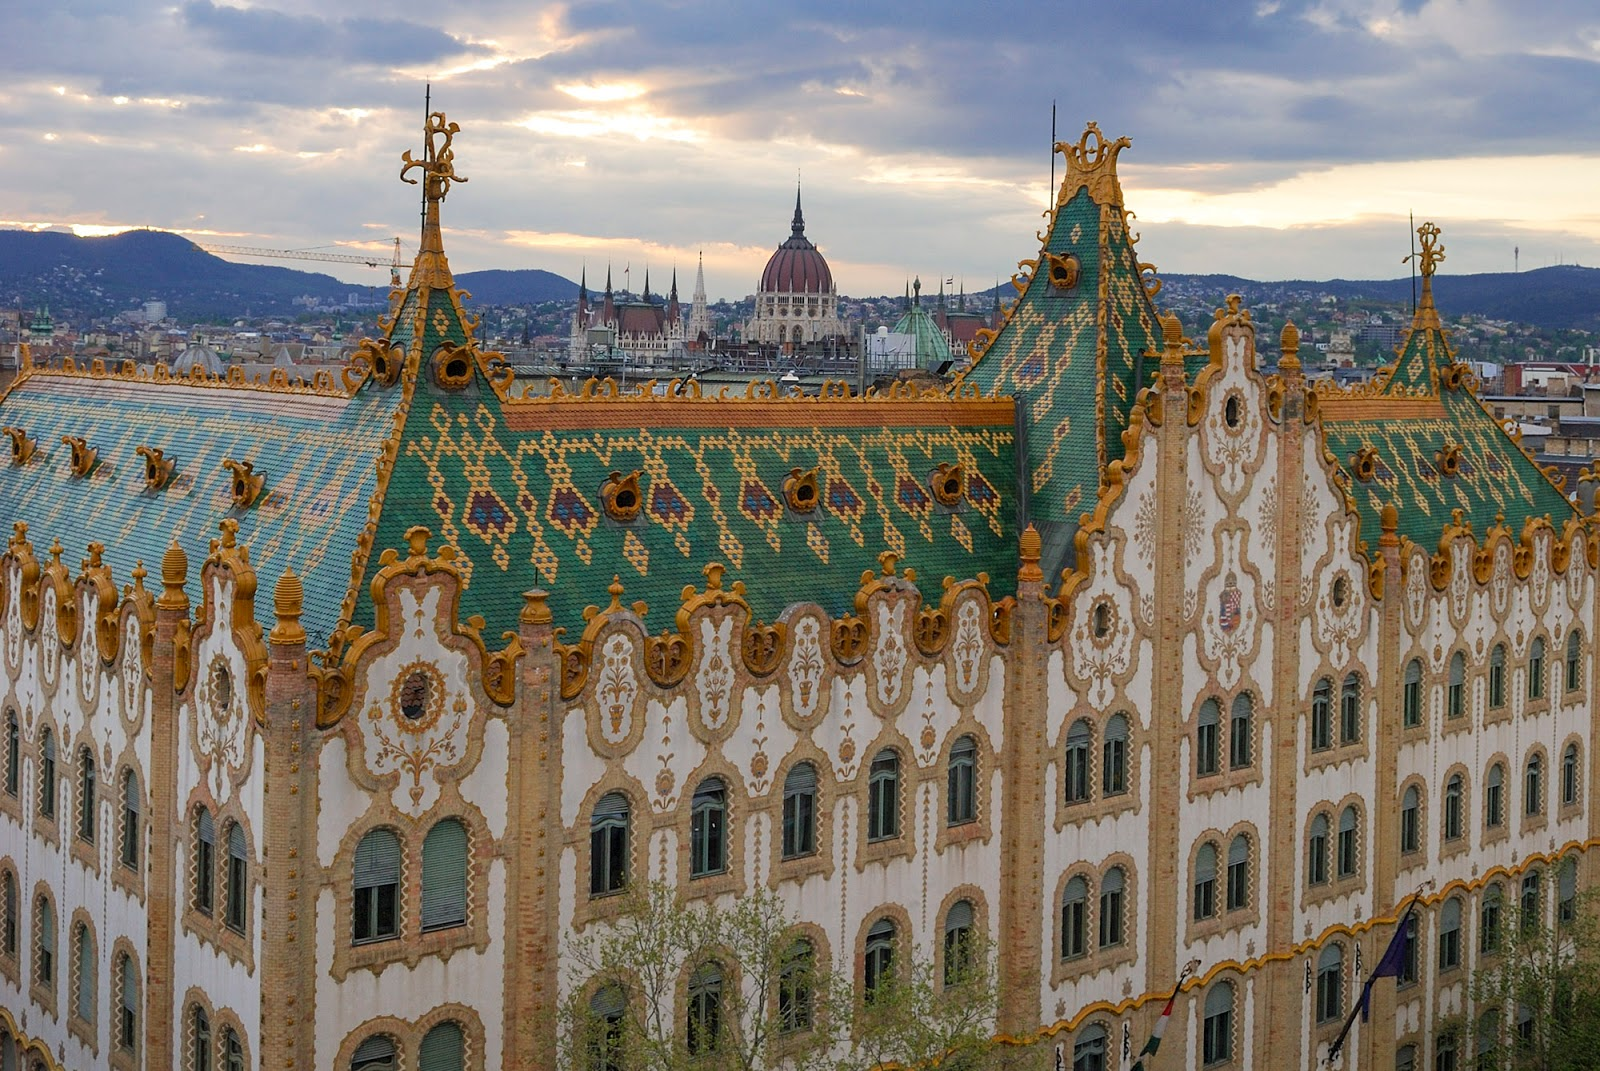 sunset bubble bar view hotel president treasury state parliament art nouveau budapest guide itinerary instagram worthy spot sights landmarks hungary